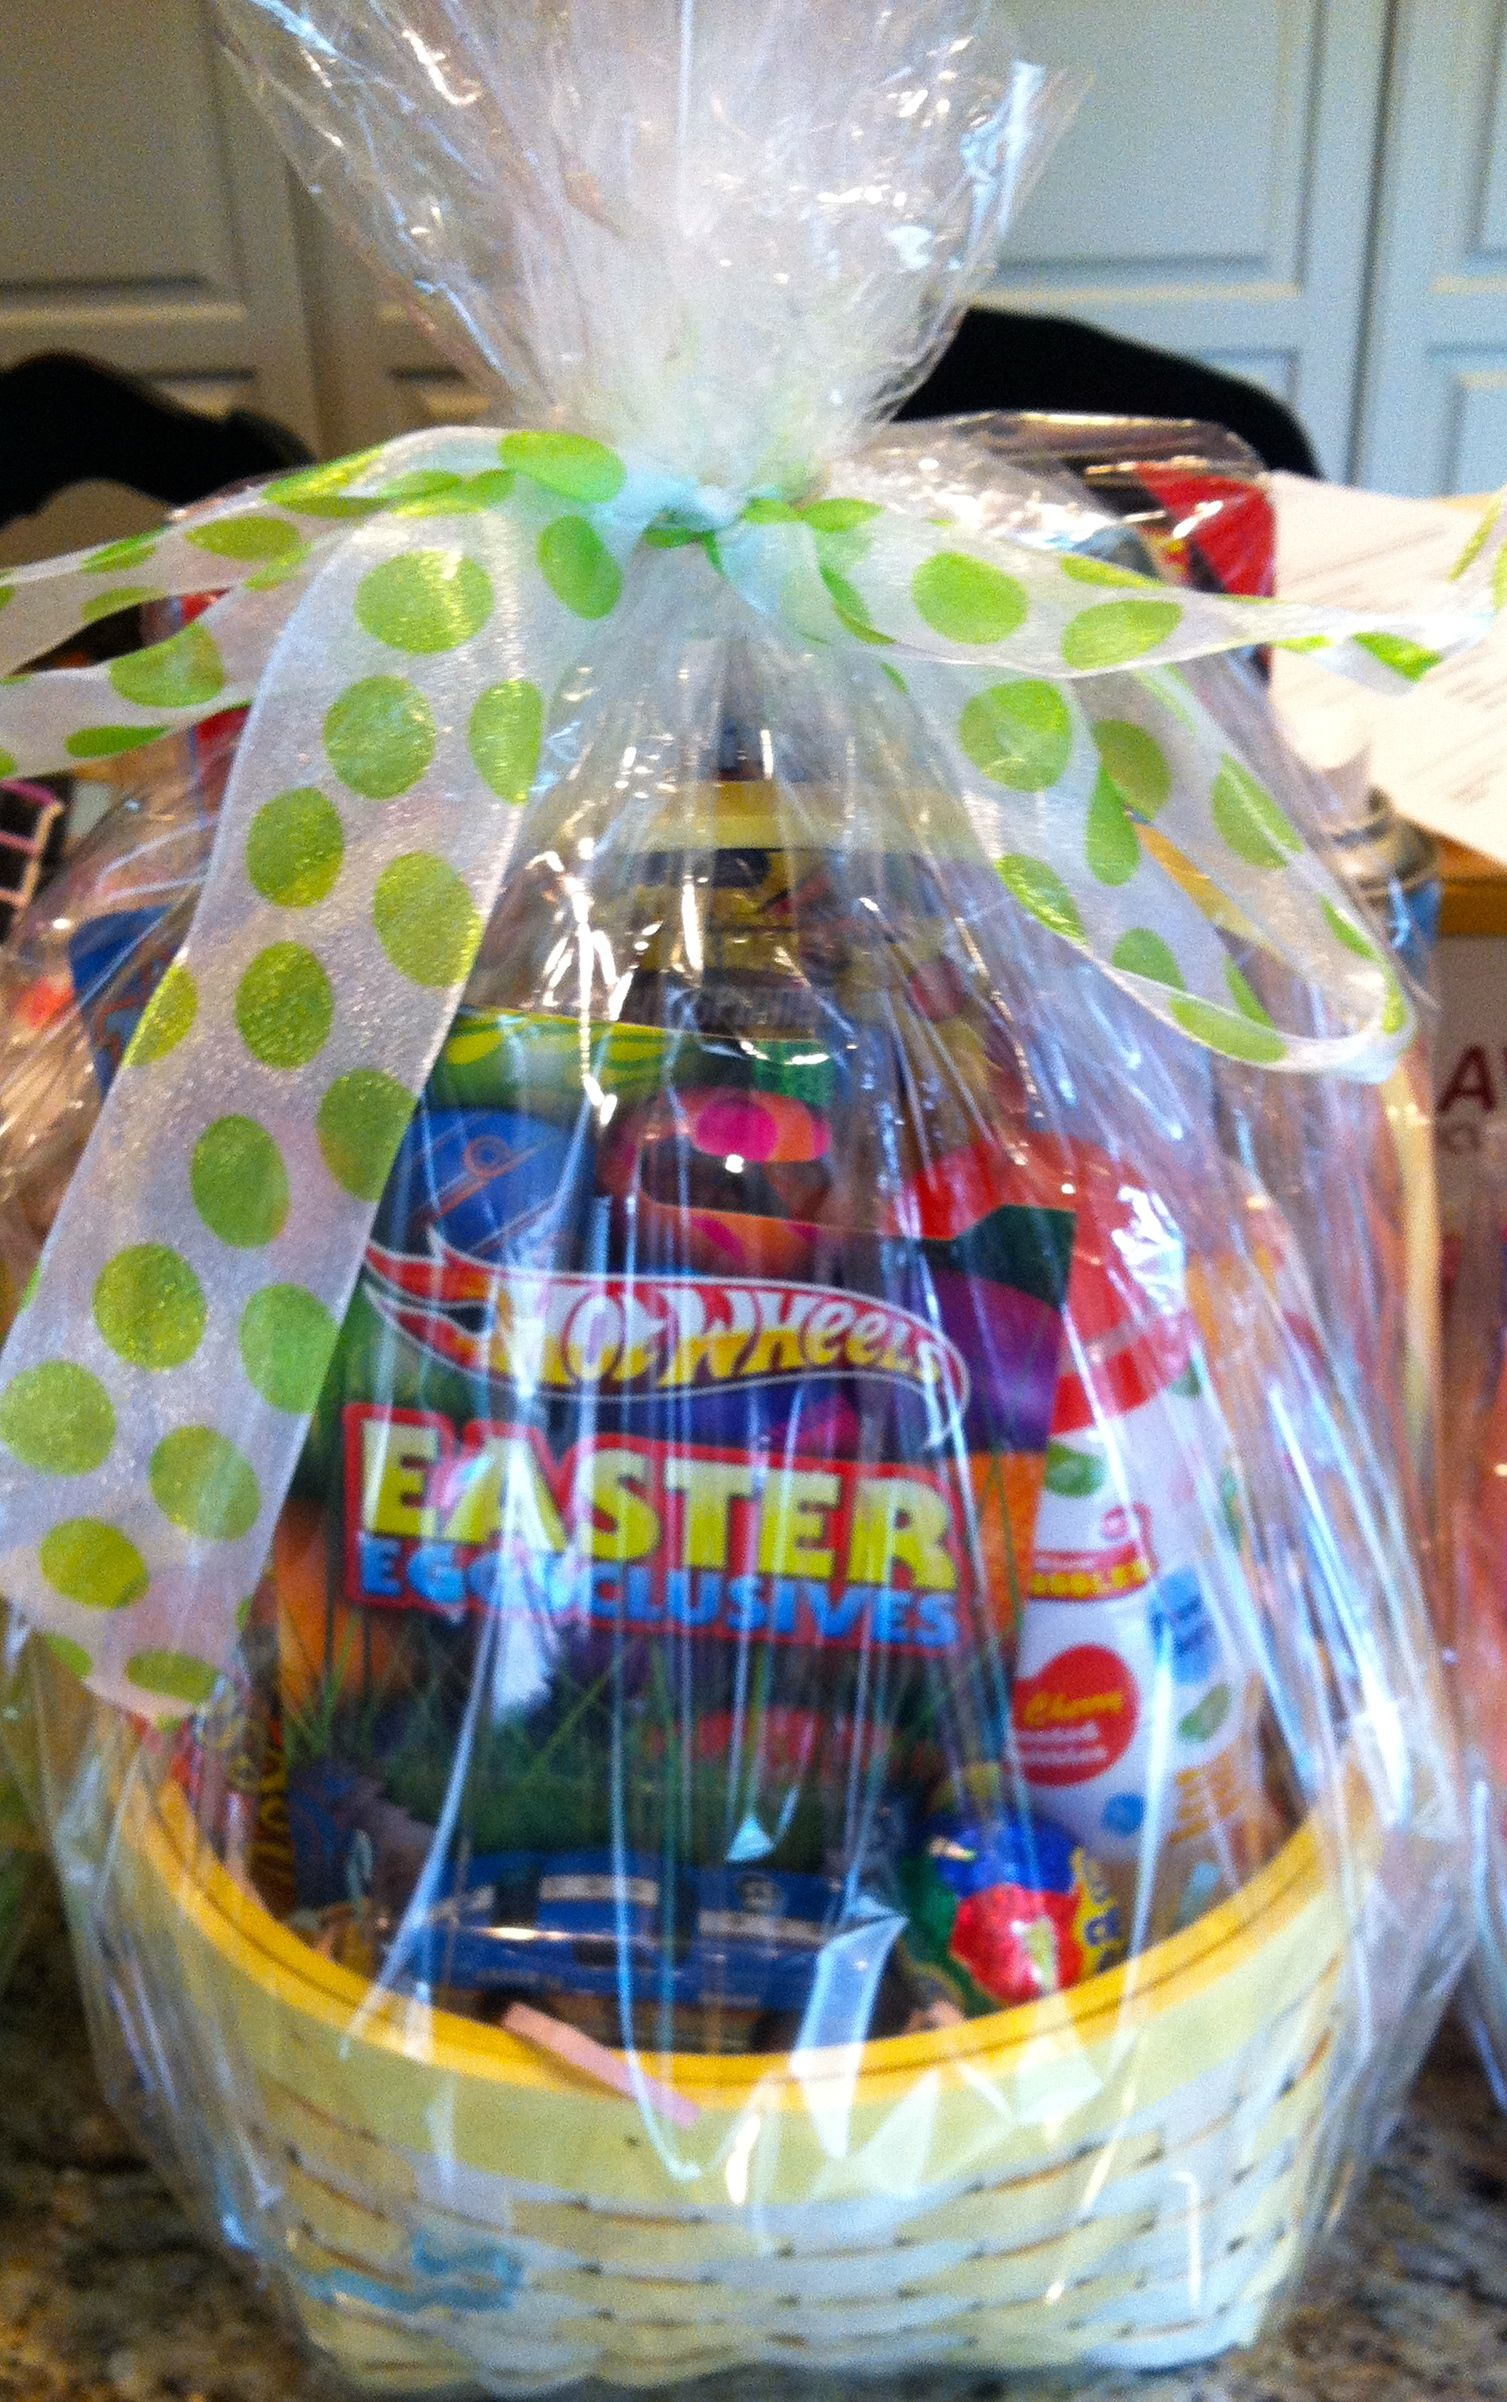 Easter basket 3 6 year old boy happy holidaysbirthdays easter basket 3 6 year old boy negle